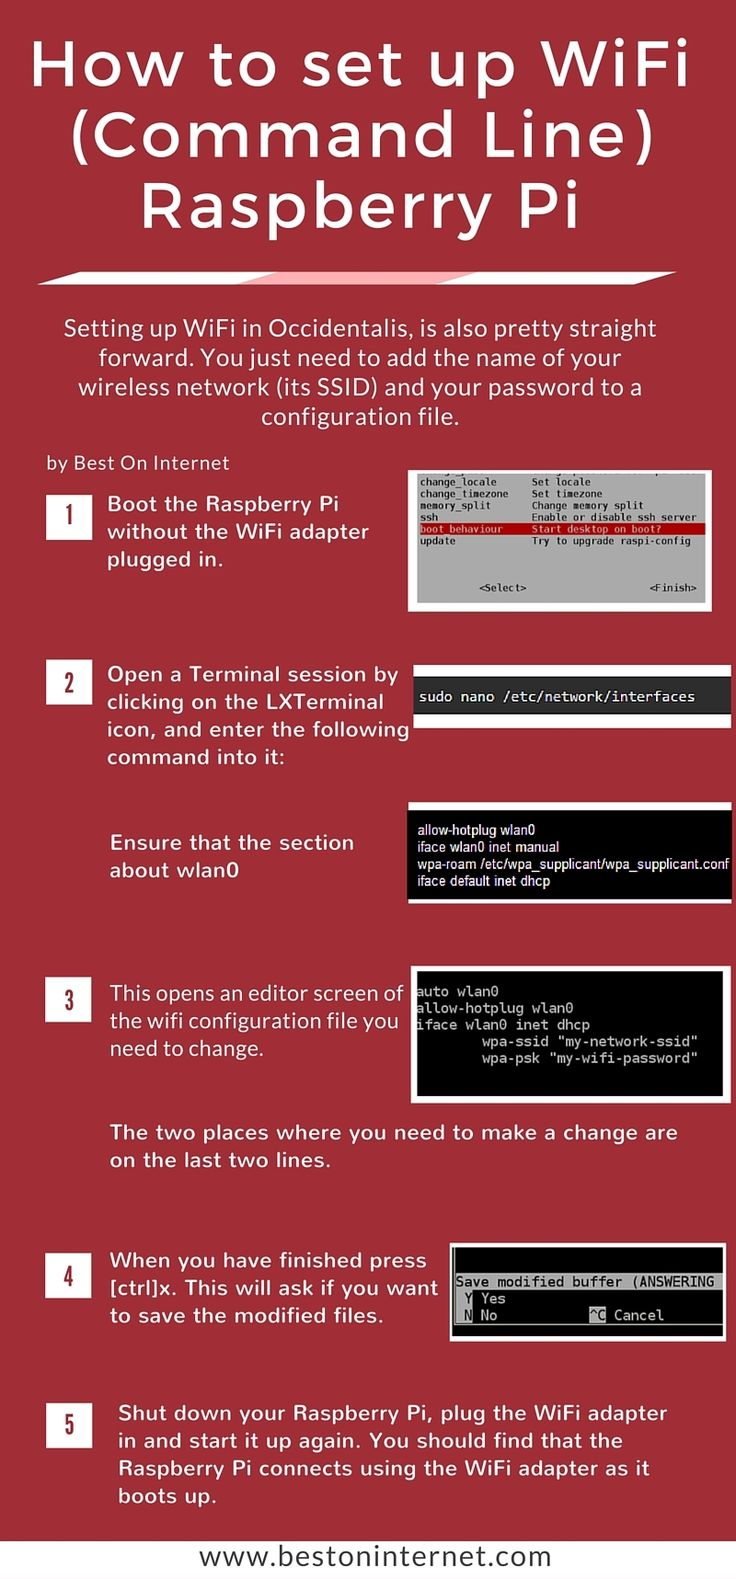 #RaspberryPi Wifi Adapter Setup Via Command Line  http://www.bestoninternet.com/compute/electronics/raspberry-pi-wifi-dongle-usb-adapter/  I have explained how to set up wifi in Raspberry Pi in this infographic. Hope you like it. Please share this infographic if it's beneficial to you.